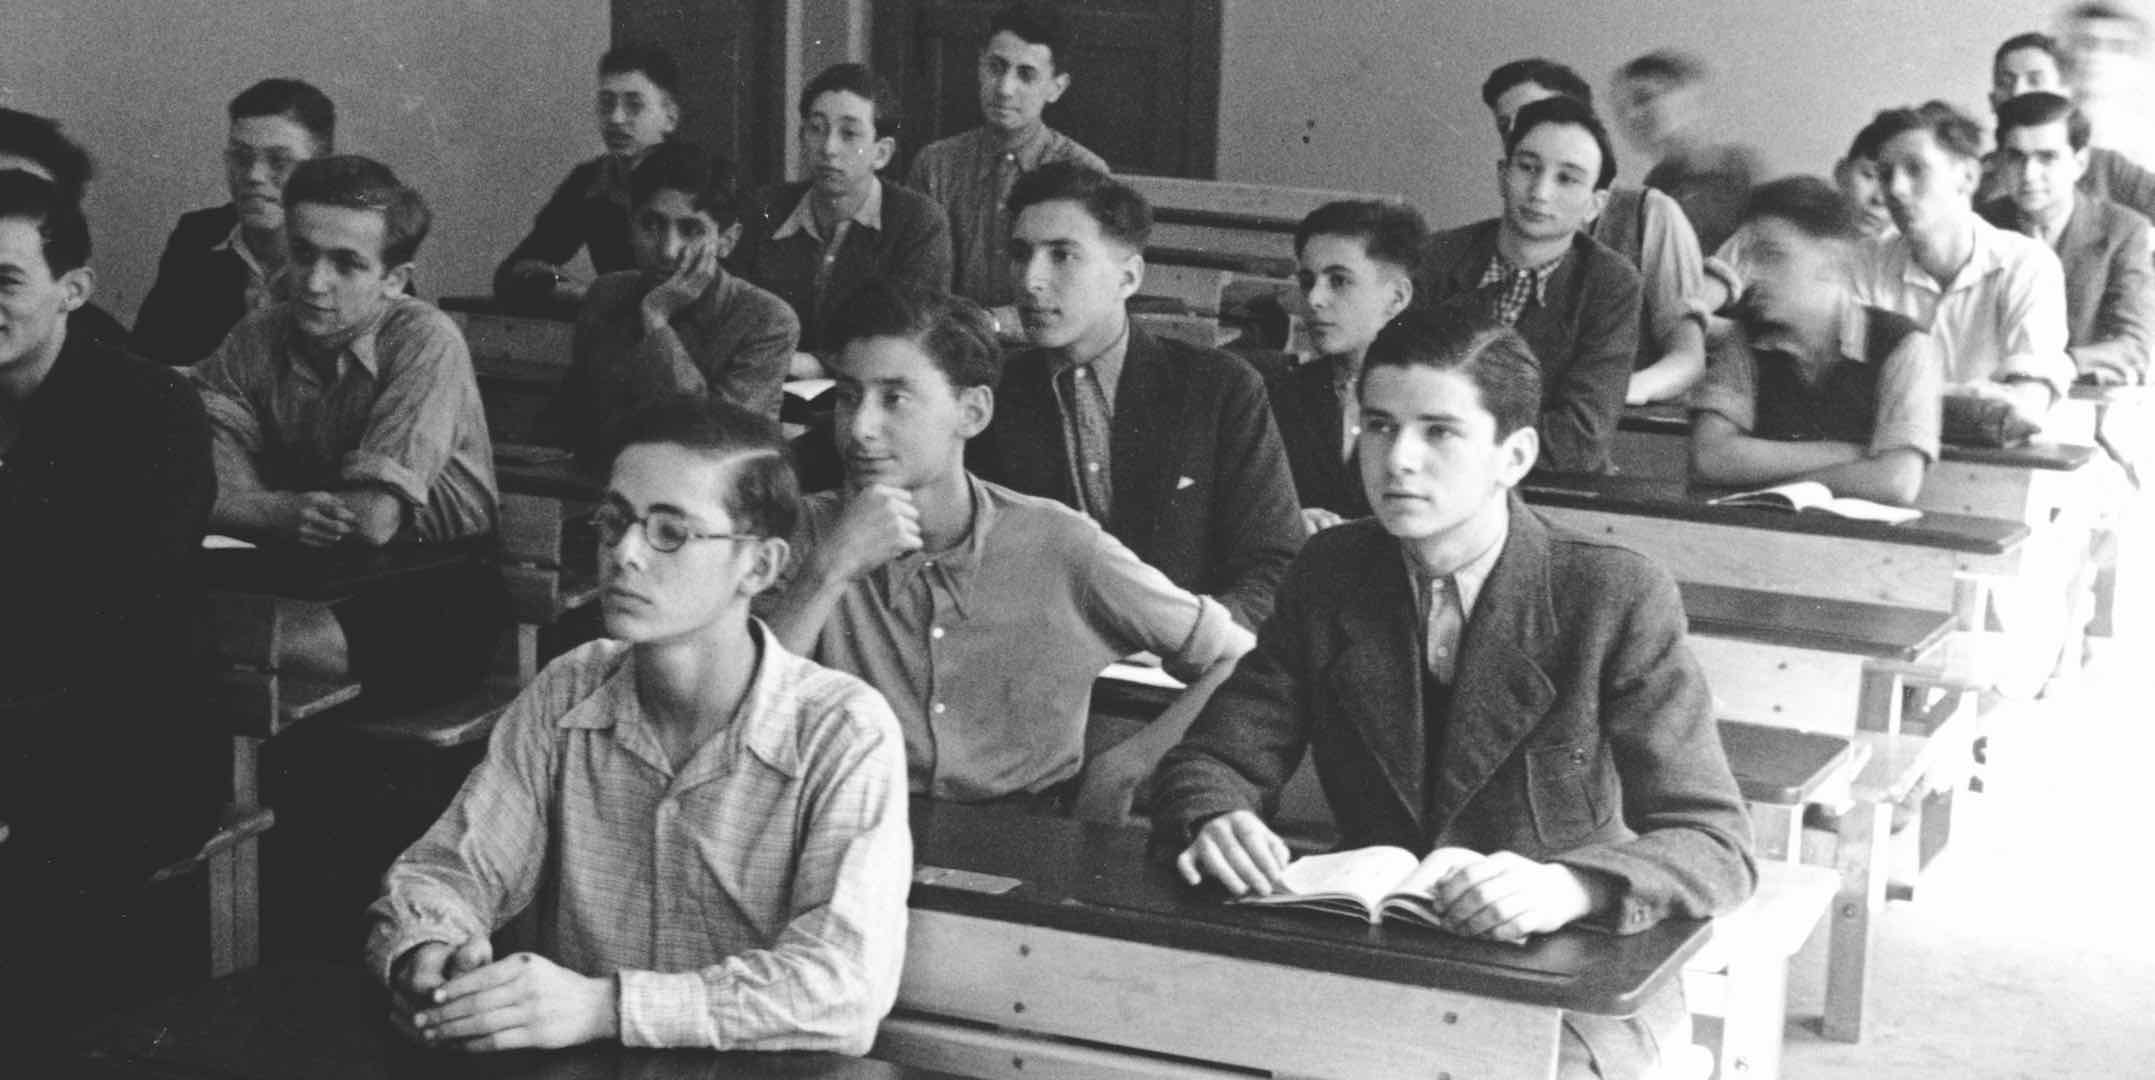 Henry Lippmann (centre, with hand on chin) during a lesson at the Jewish ORT school in Berlin, Germany, c 1939. ANMM Collection ANMS0219[007], gift from Henry Lippmann